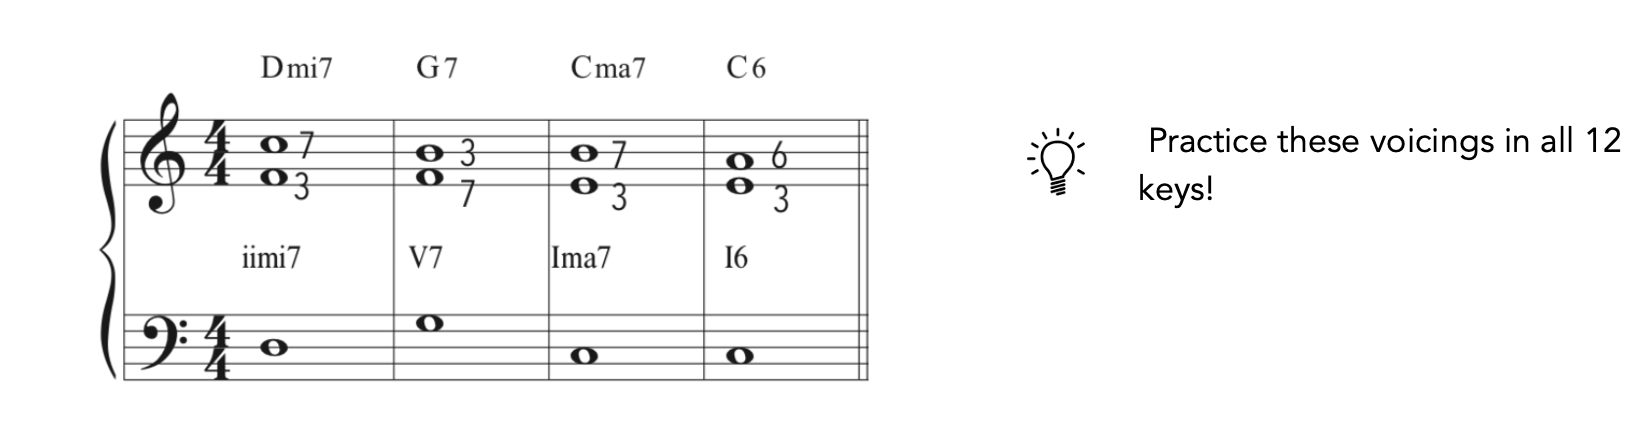 easy jazz piano voicings in music notation